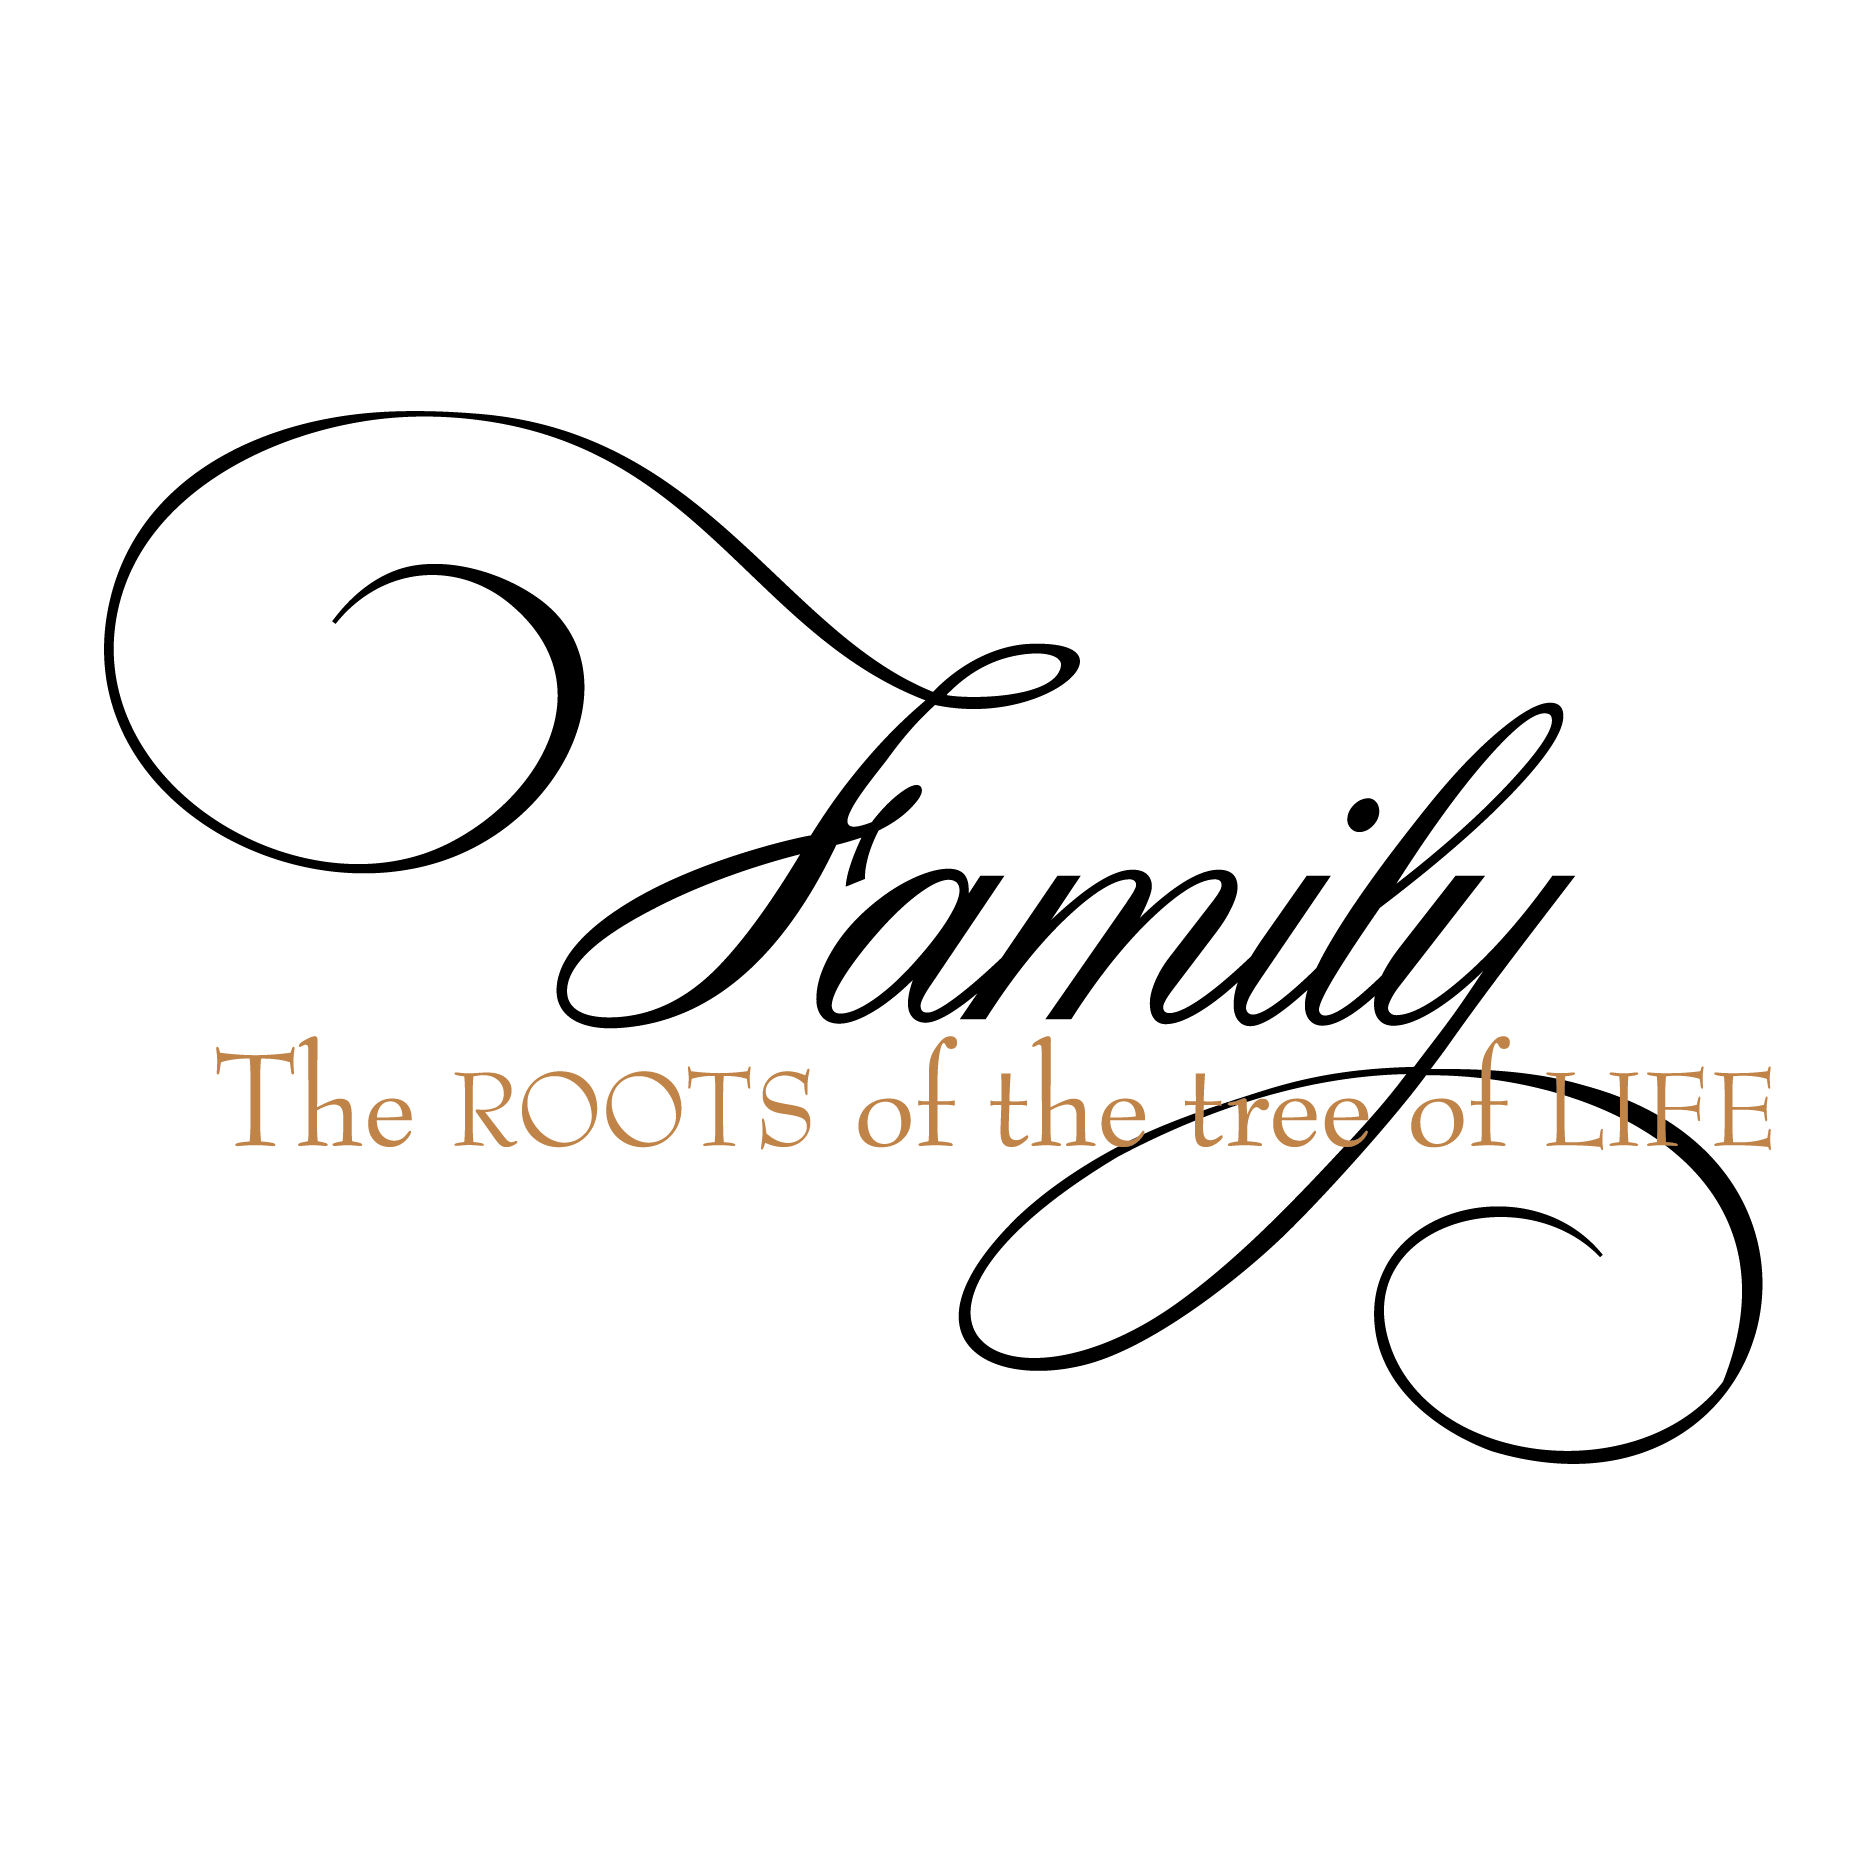 Roots Of The Tree Of Life Wall Quotes Decal Wallquotes Com